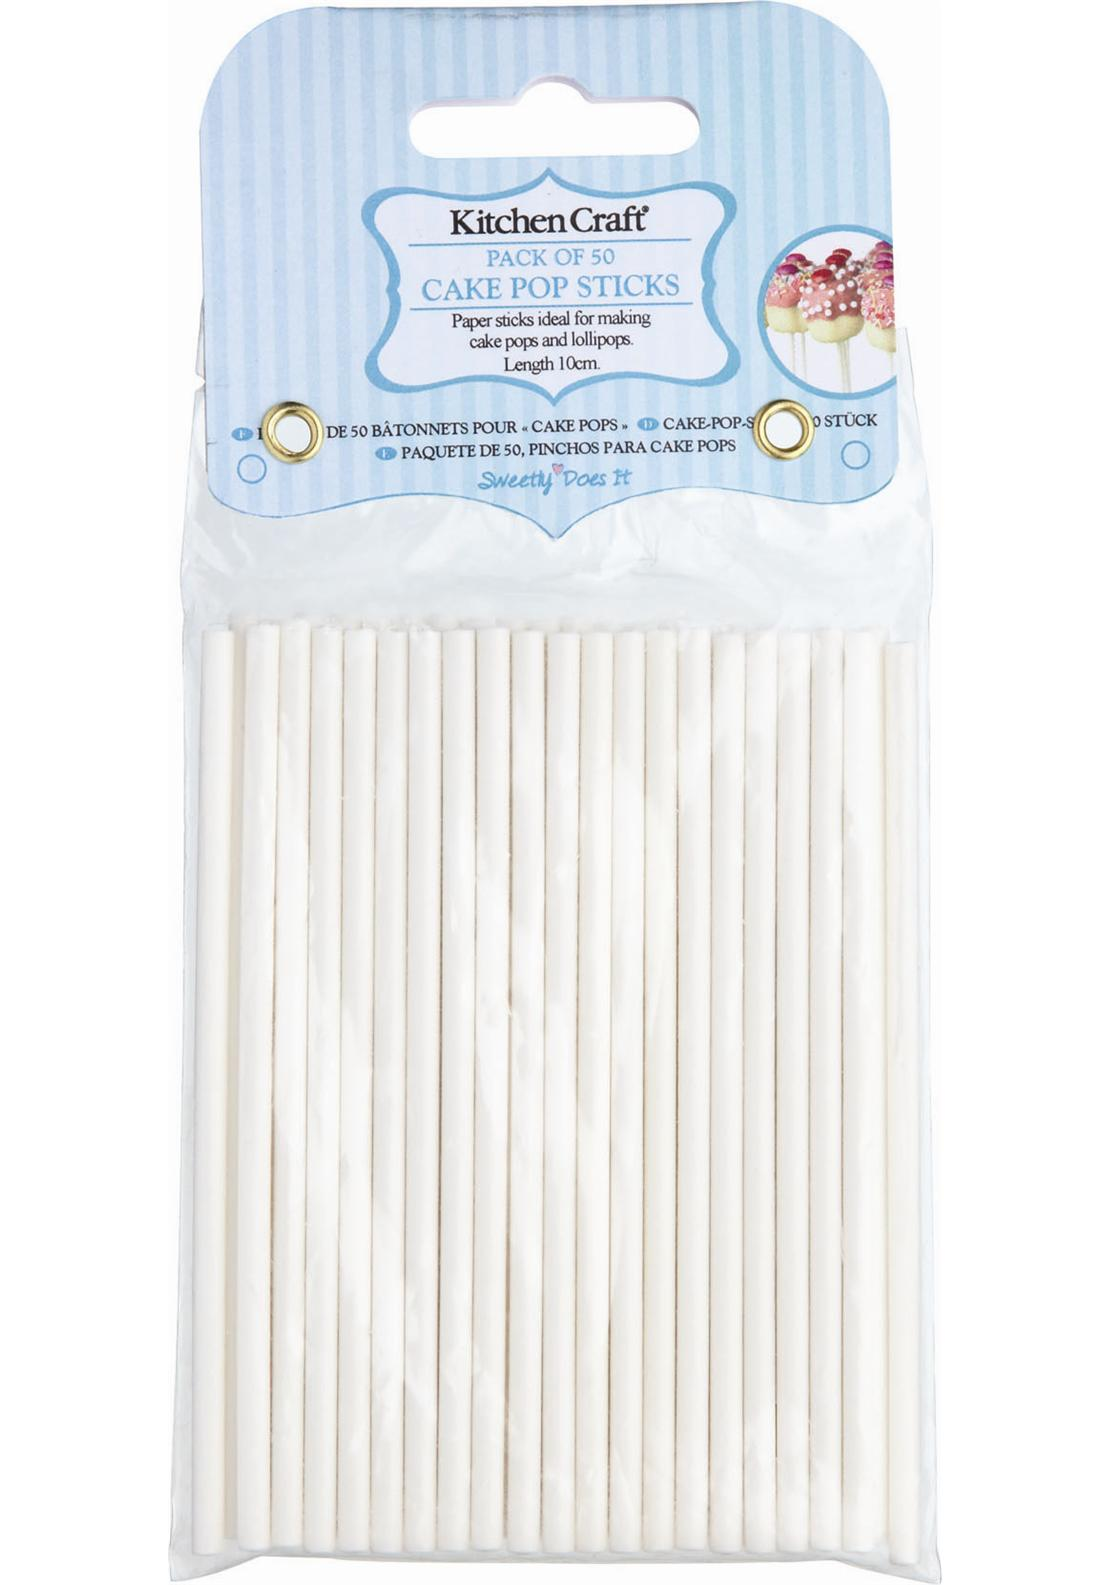 Sweetly Does It 10cm Cake Pop Sticks (Pack of 50)